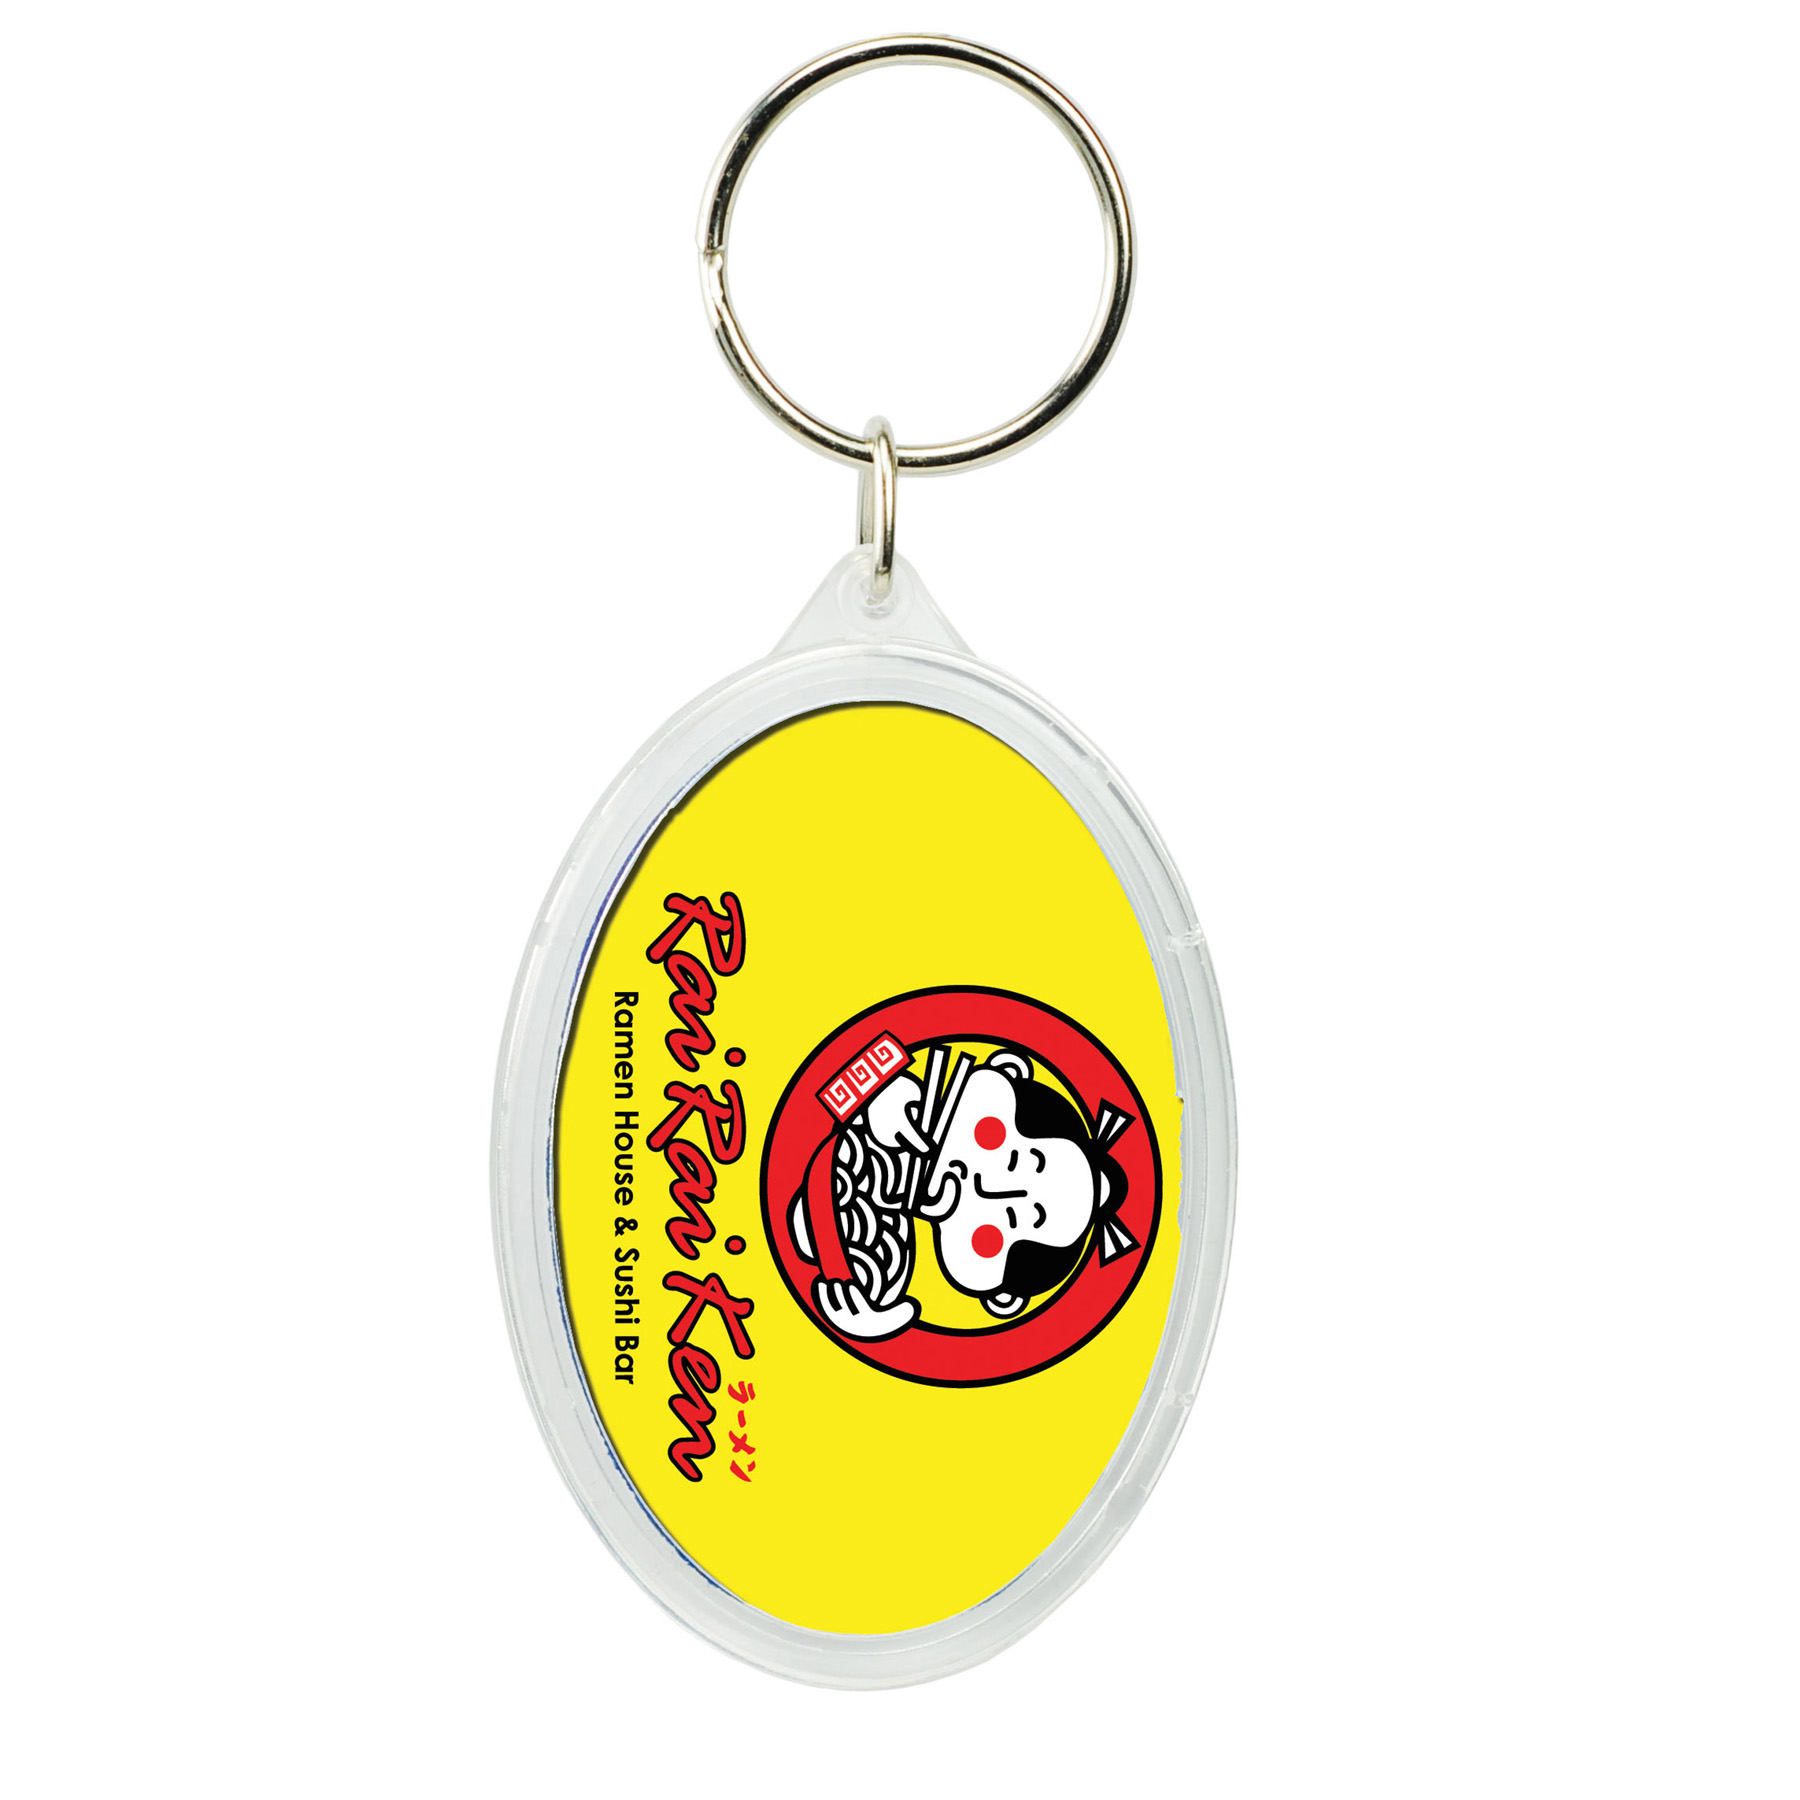 Oval Crystal Key Tag, 318-K, Full Colour Imprint